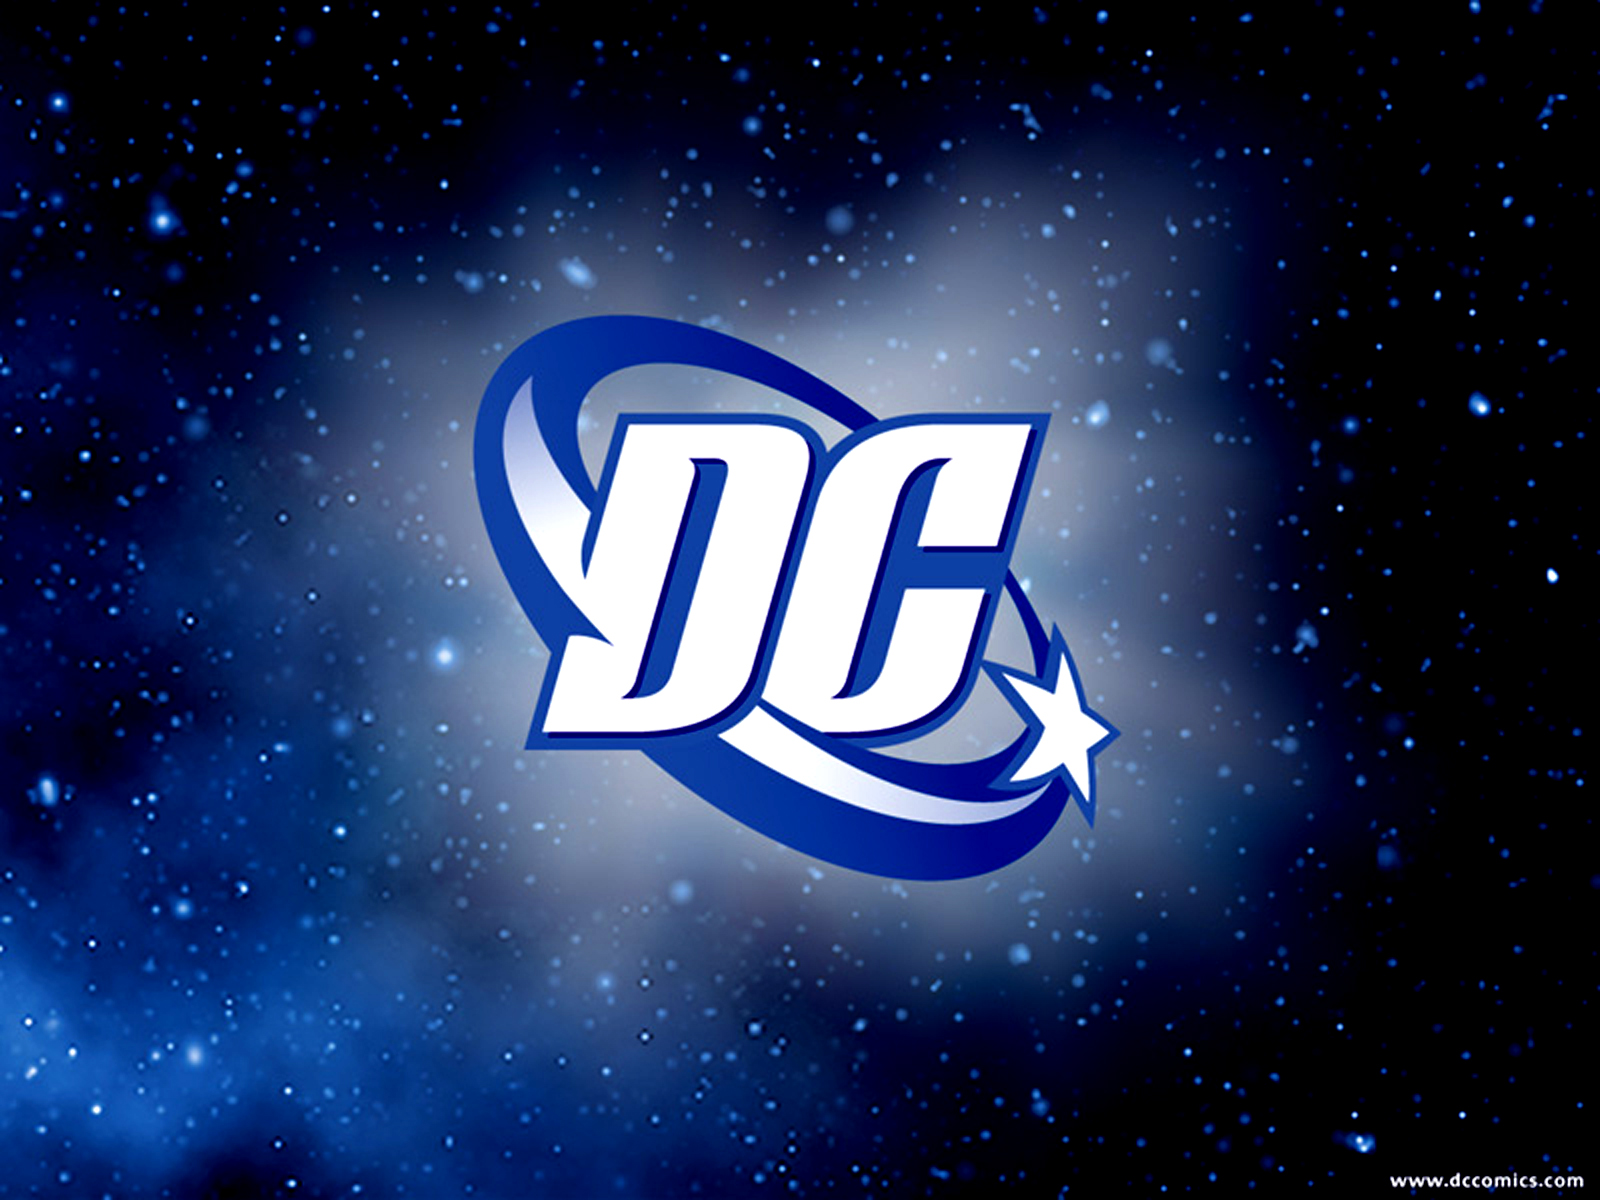 DC Comics All Characters HD Desktop Wallpapers Cartoon Wallpapers 1600x1200